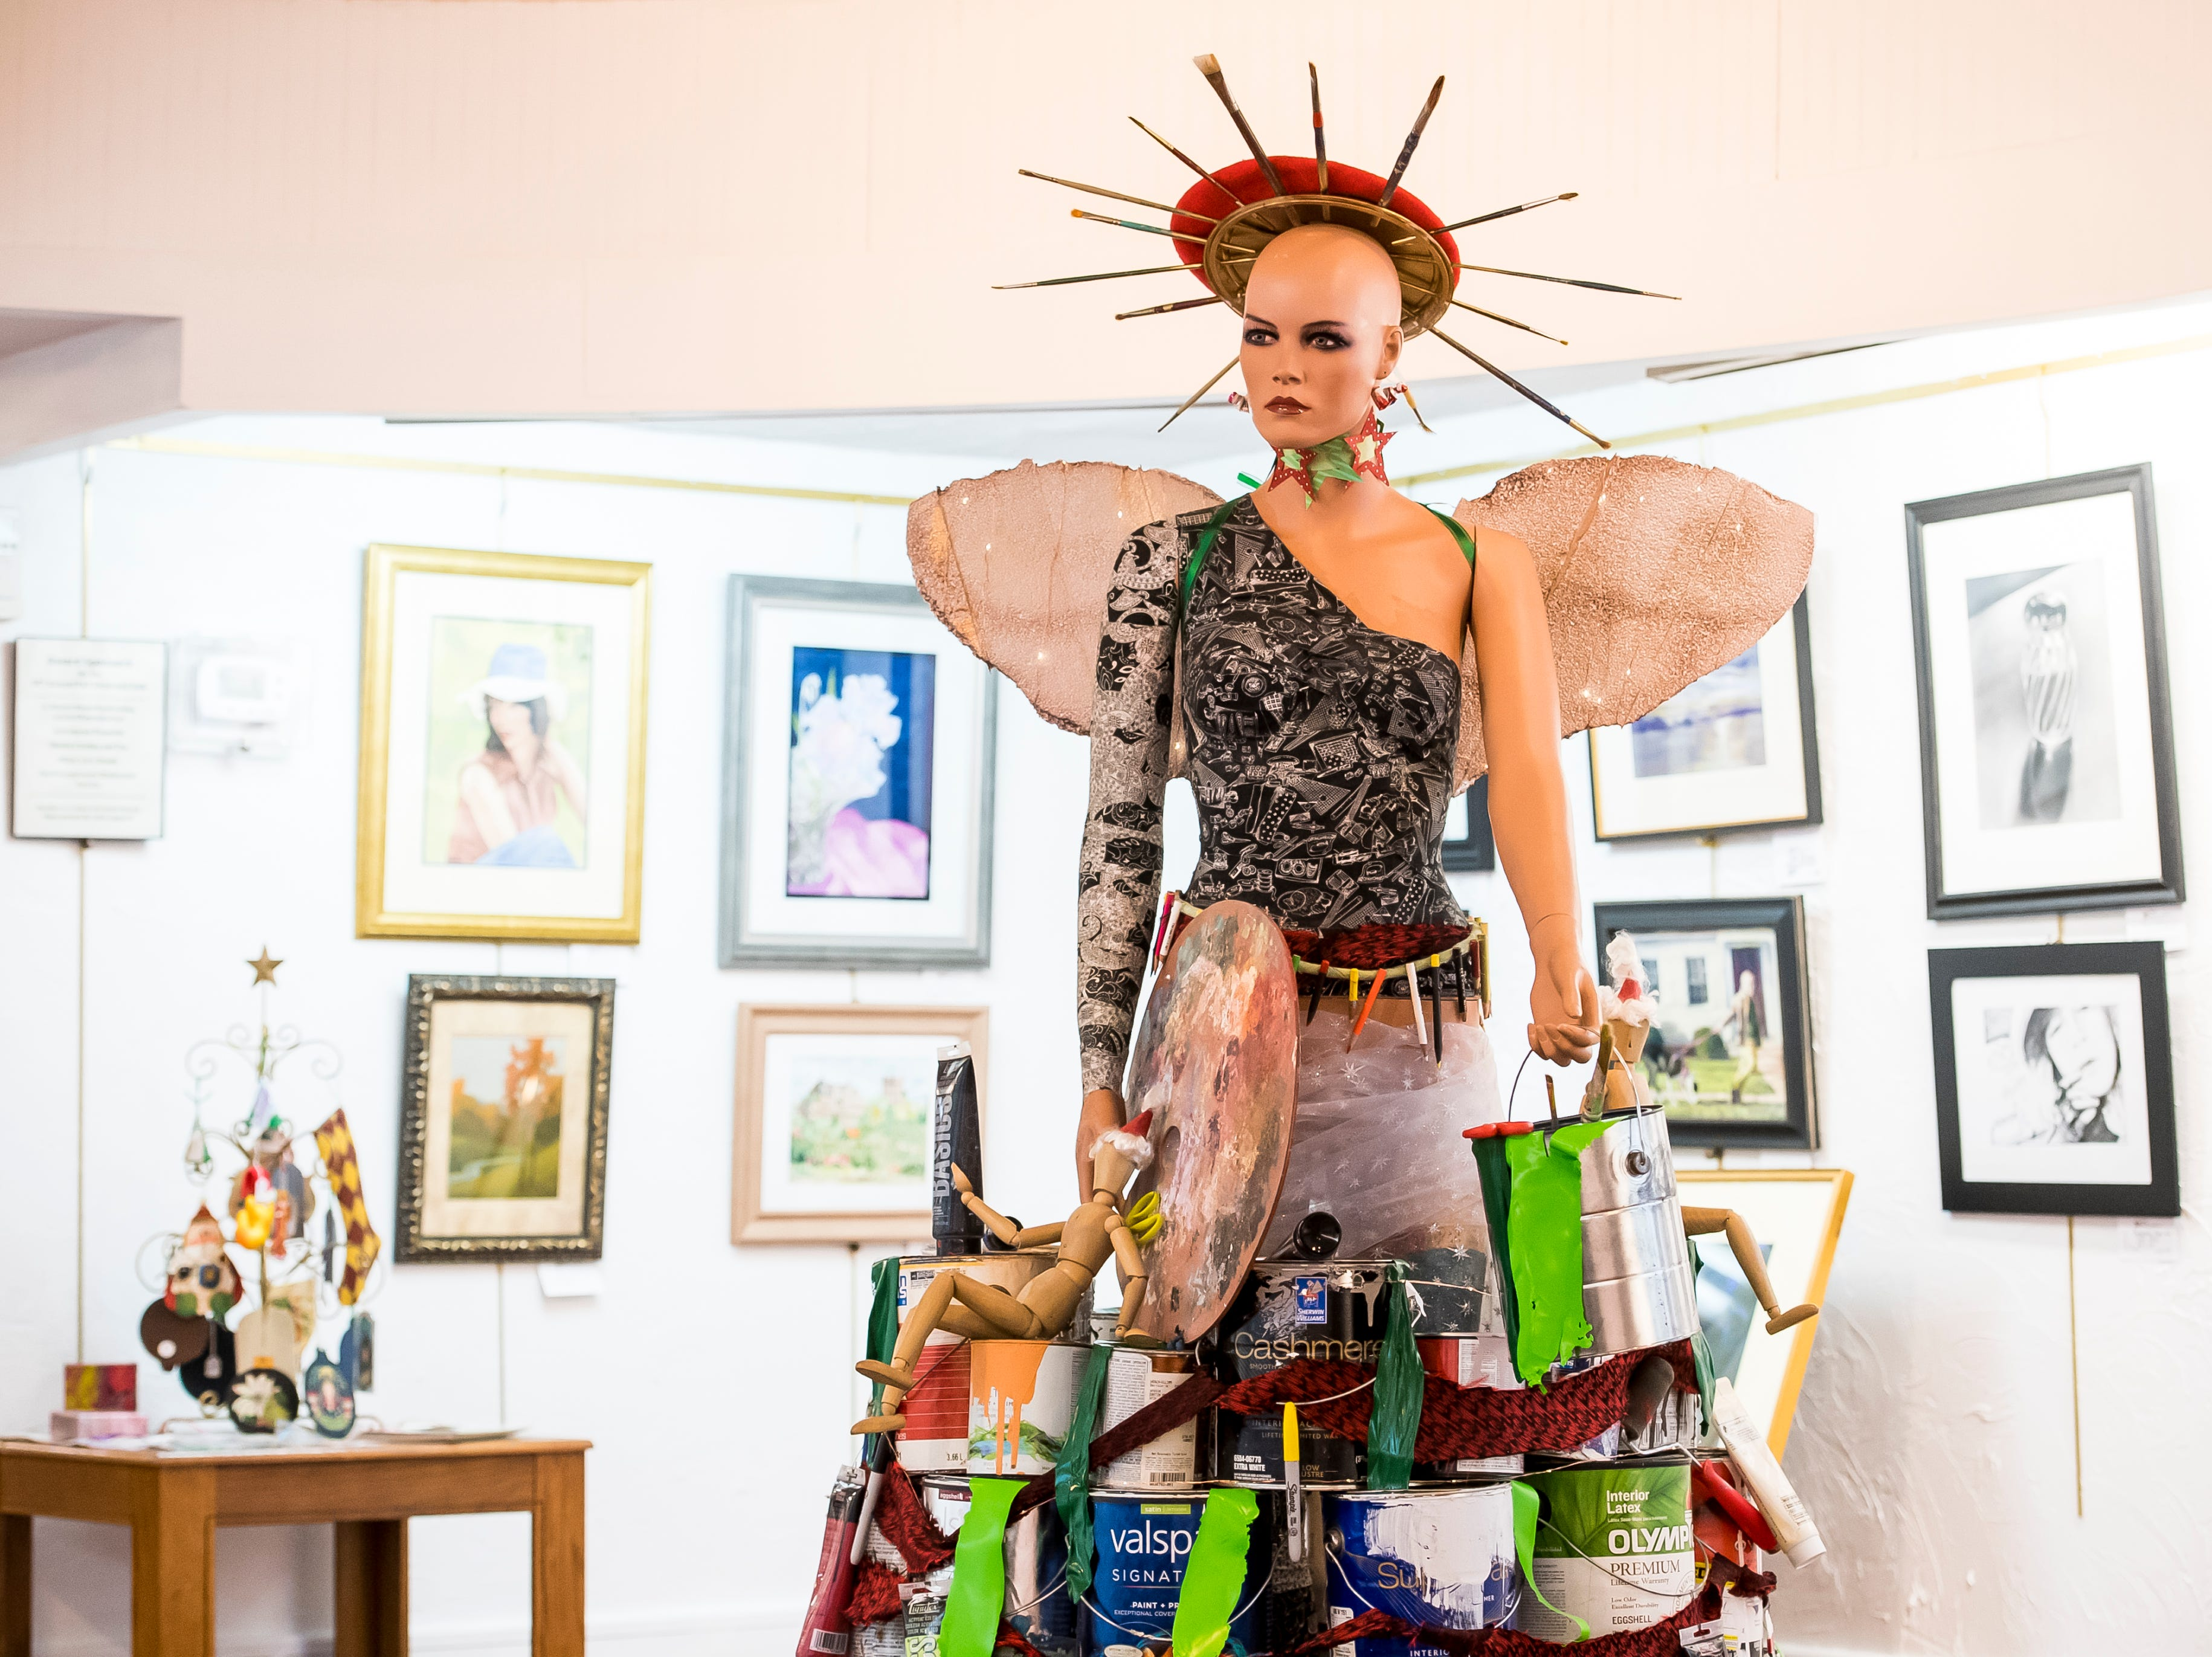 Hanover Area Arts Guild located at 32 Carlisle St. Visit mainstreethanover.org for details about Christmas Tree Wars.